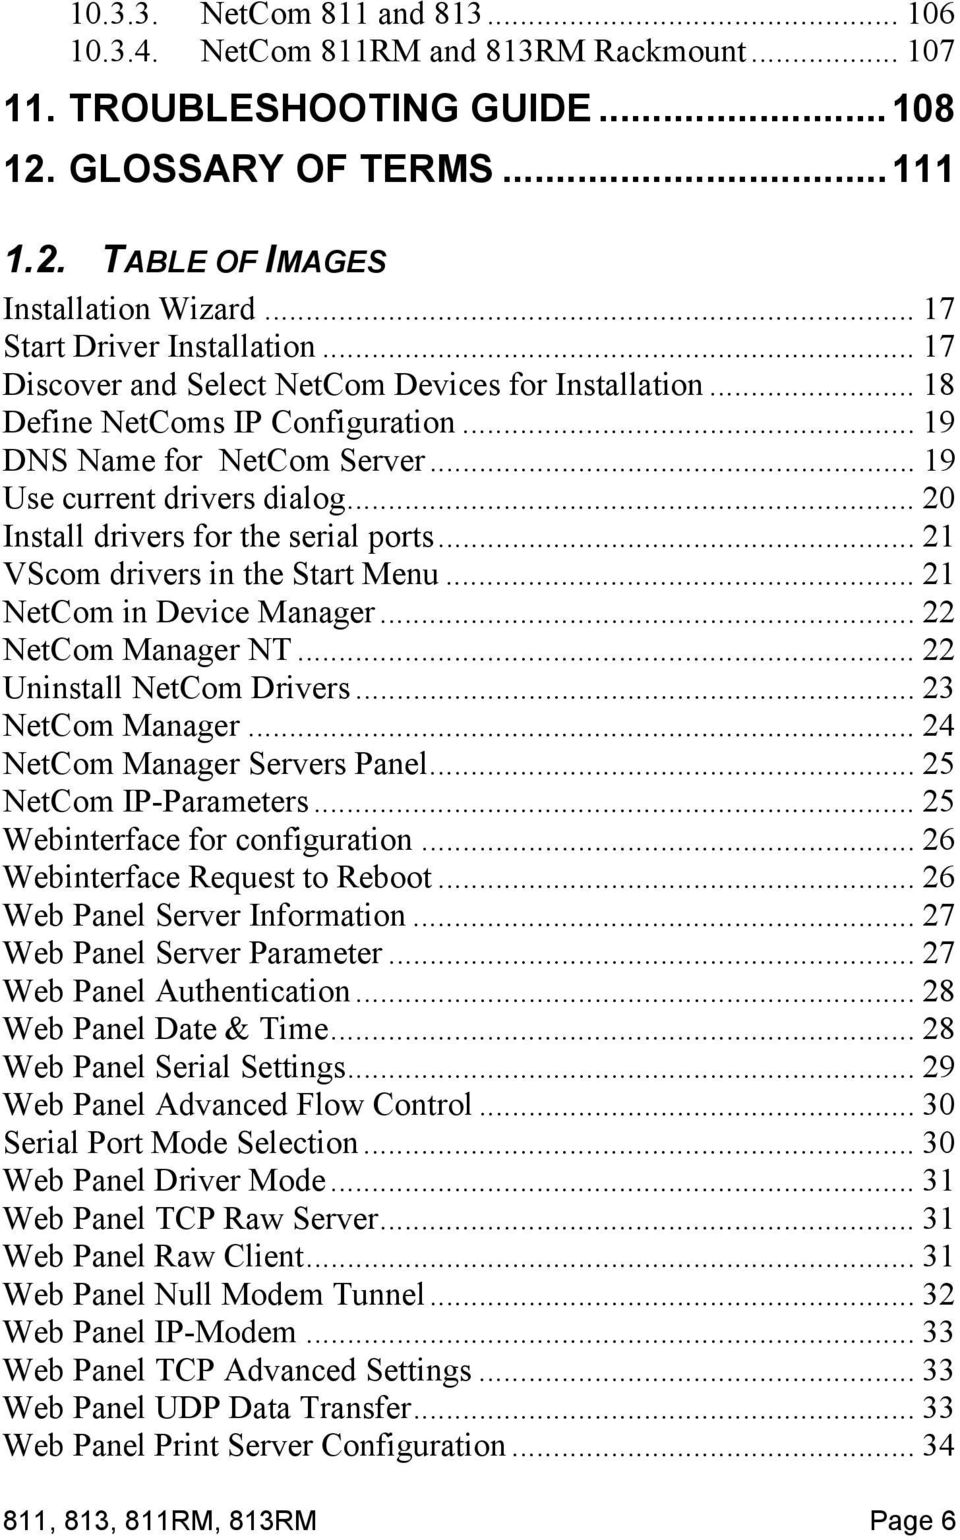 .. 20 Install drivers for the serial ports... 21 VScom drivers in the Start Menu... 21 NetCom in Device Manager... 22 NetCom Manager NT... 22 Uninstall NetCom Drivers... 23 NetCom Manager.